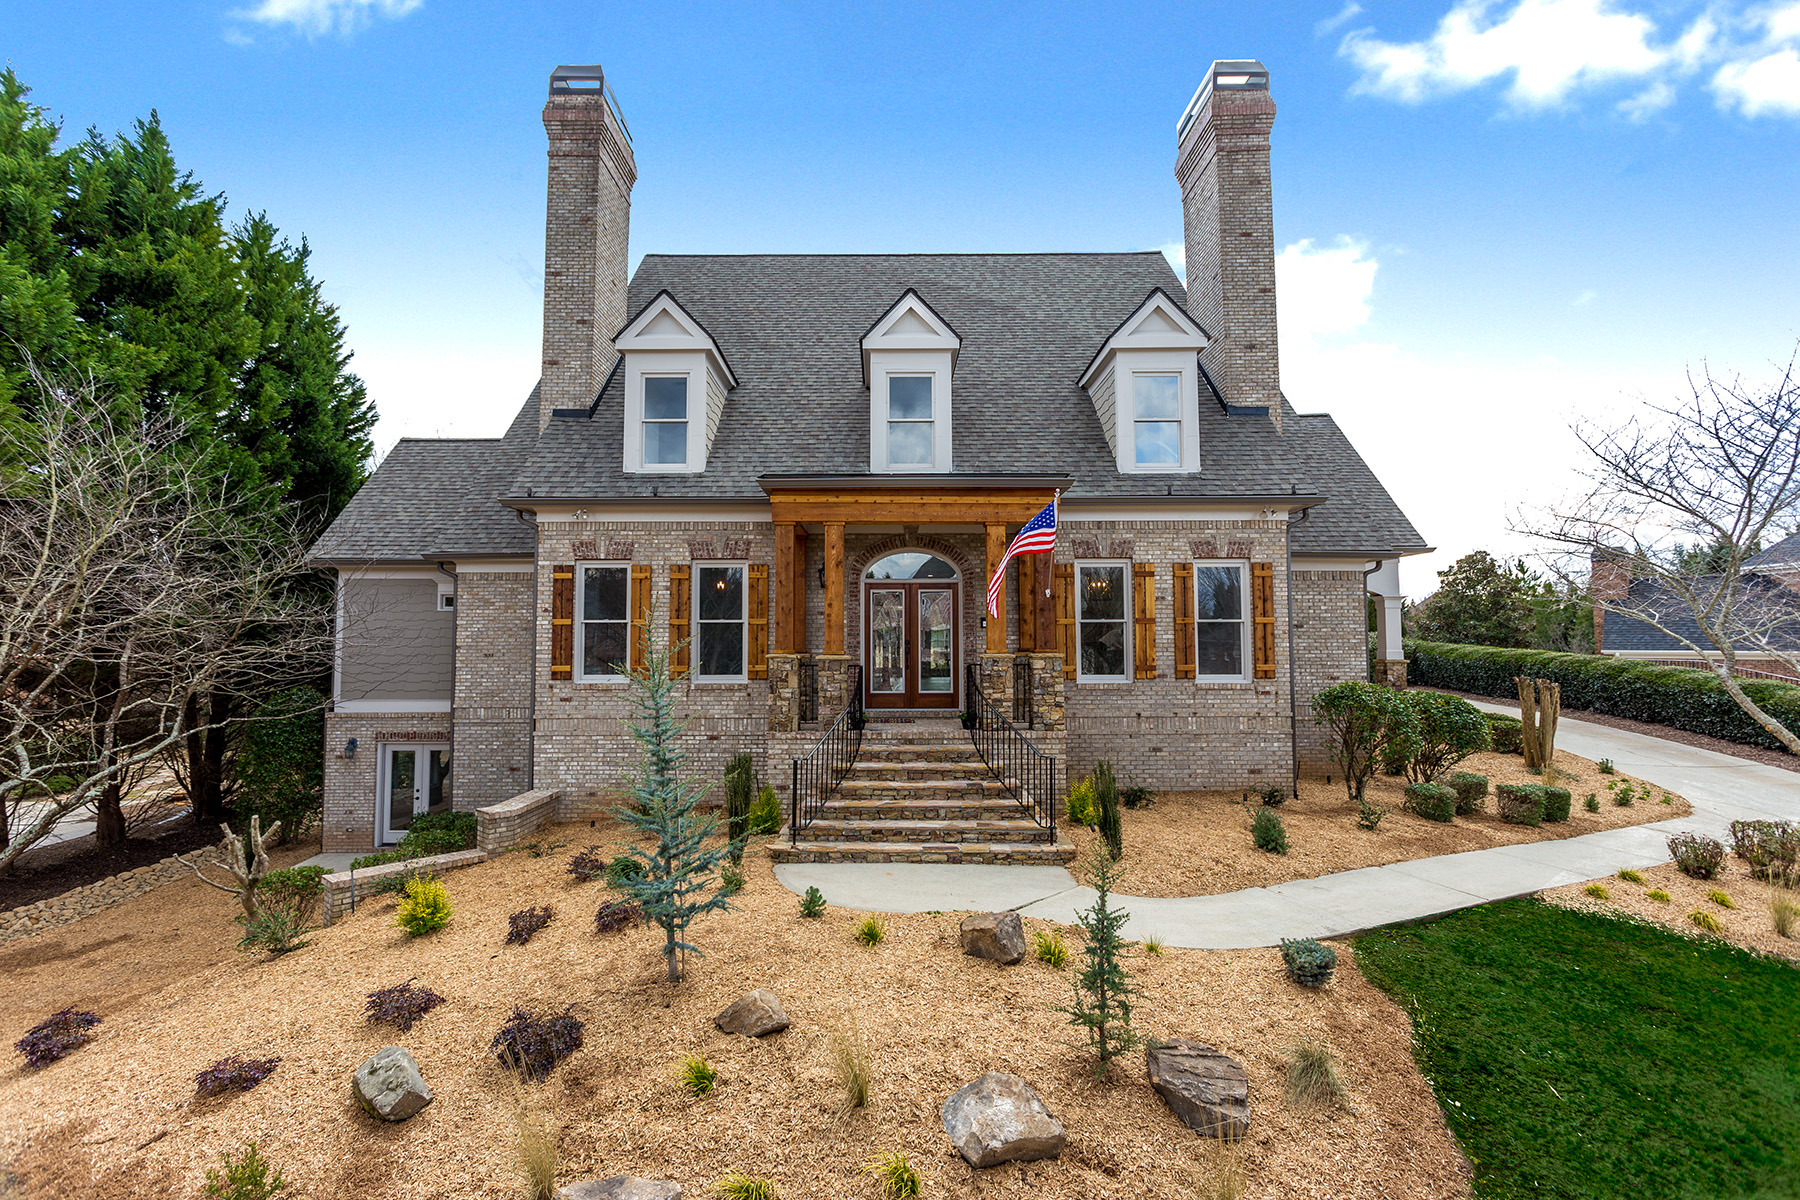 Single Family Homes for Sale at Tastefully Updated Home In Creekstone Estates 2450 Flat Stone Drive Cumming, Georgia 30041 United States